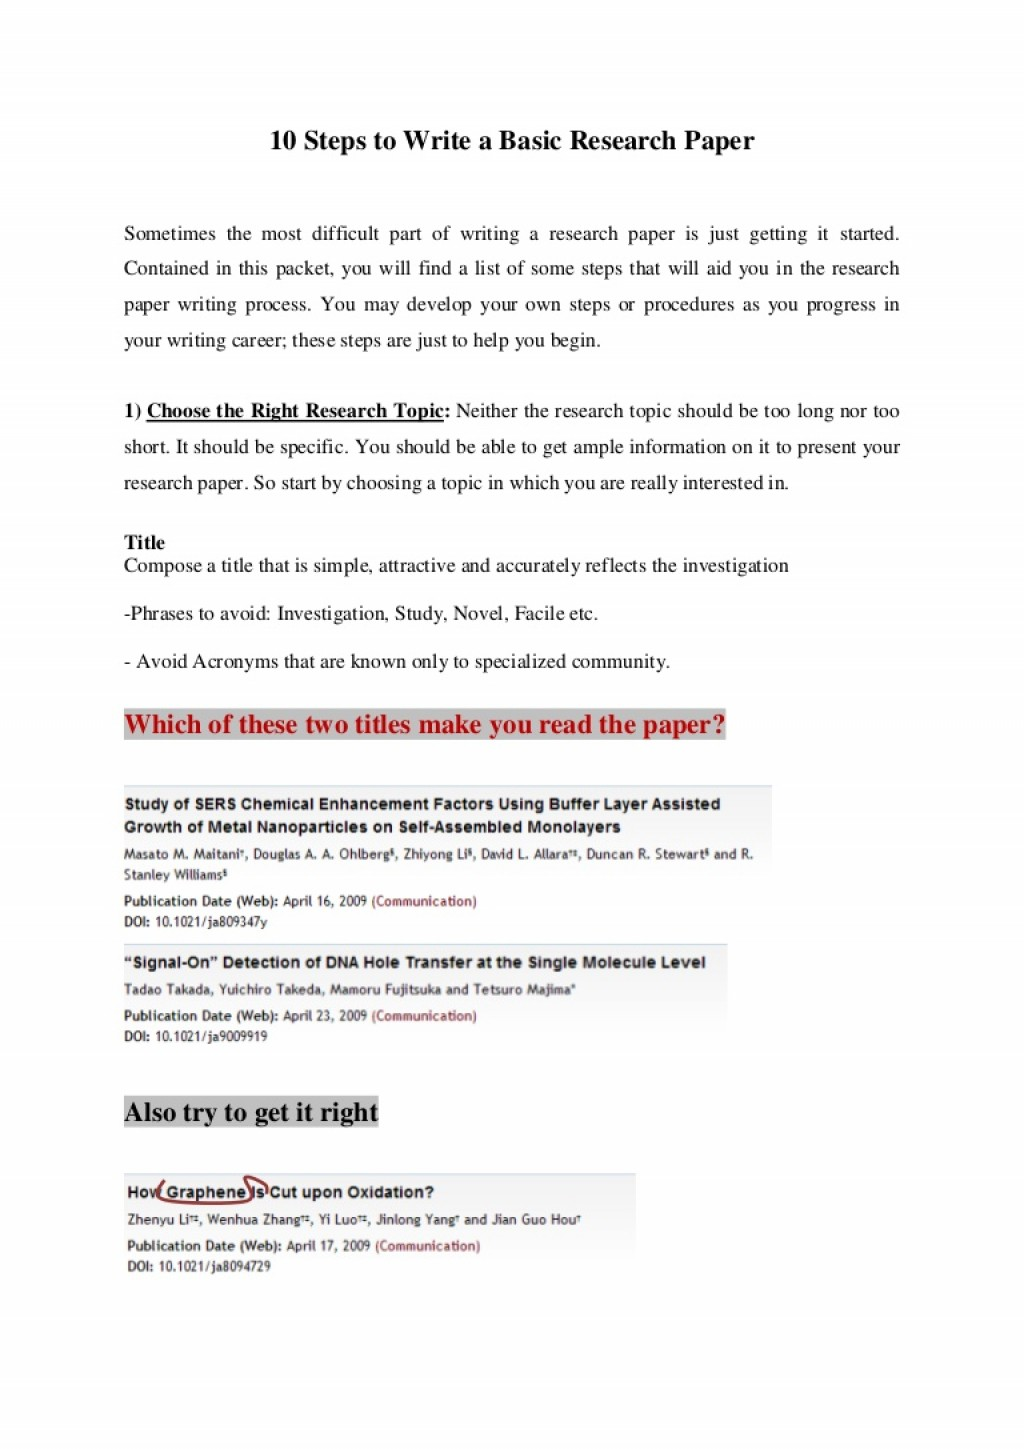 001 Steps Writing Research Paper 10stepstowriteabasicresearchpaper Thumbnail Best 10 In The Markman Pdf To A Page Large